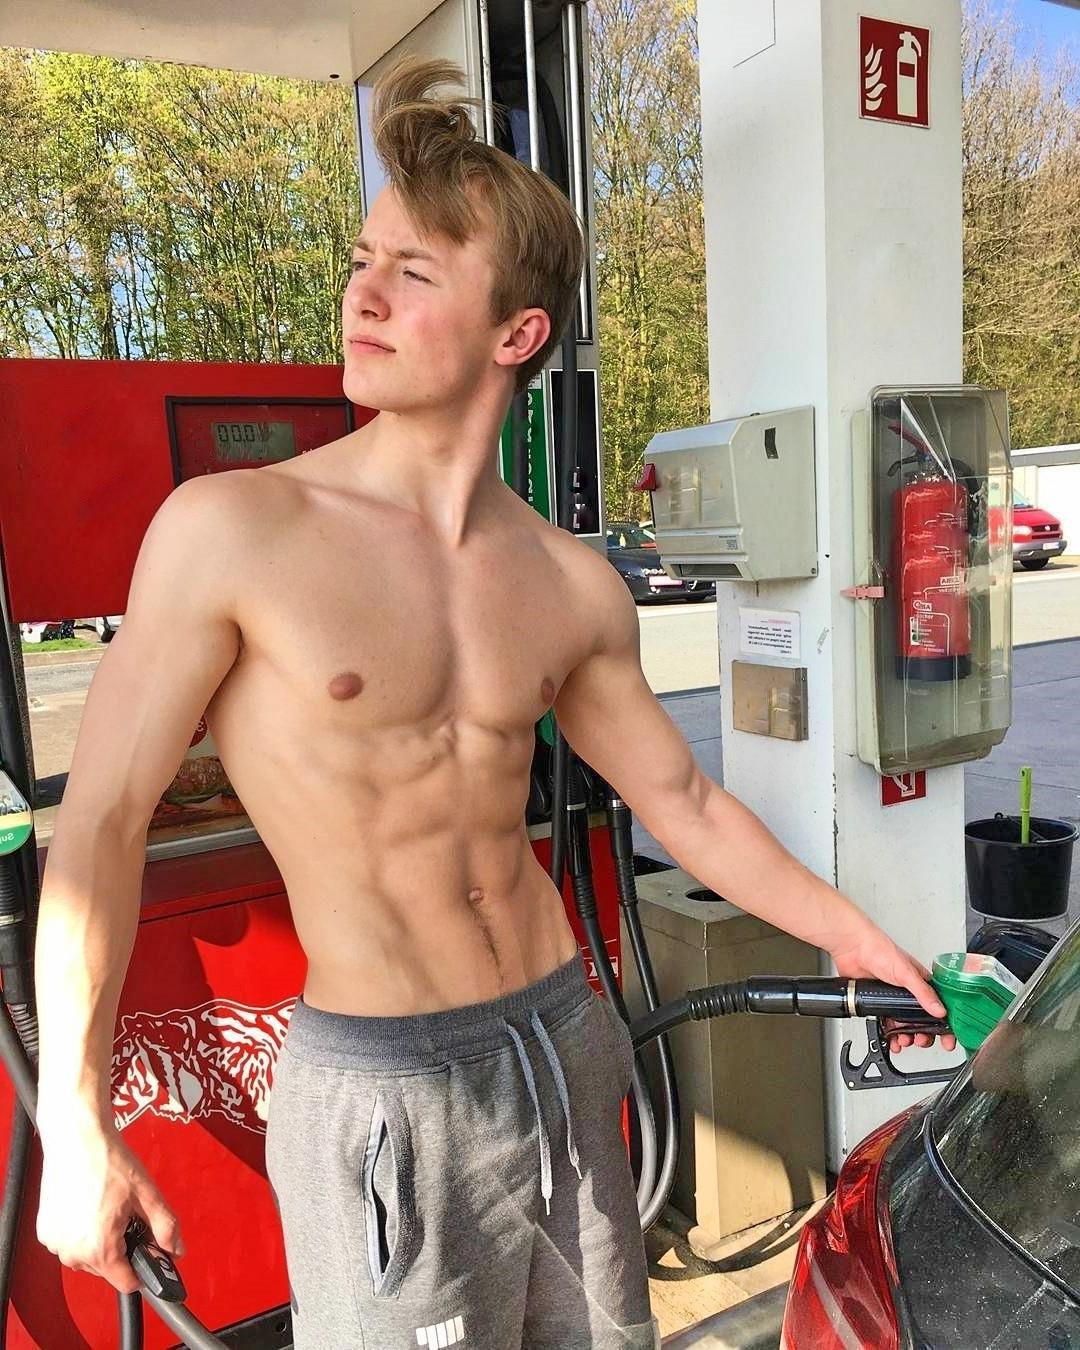 hot-young-college-boy-working-gas-station-filling-cars-shirtless-sixpack-abs-blond-bro